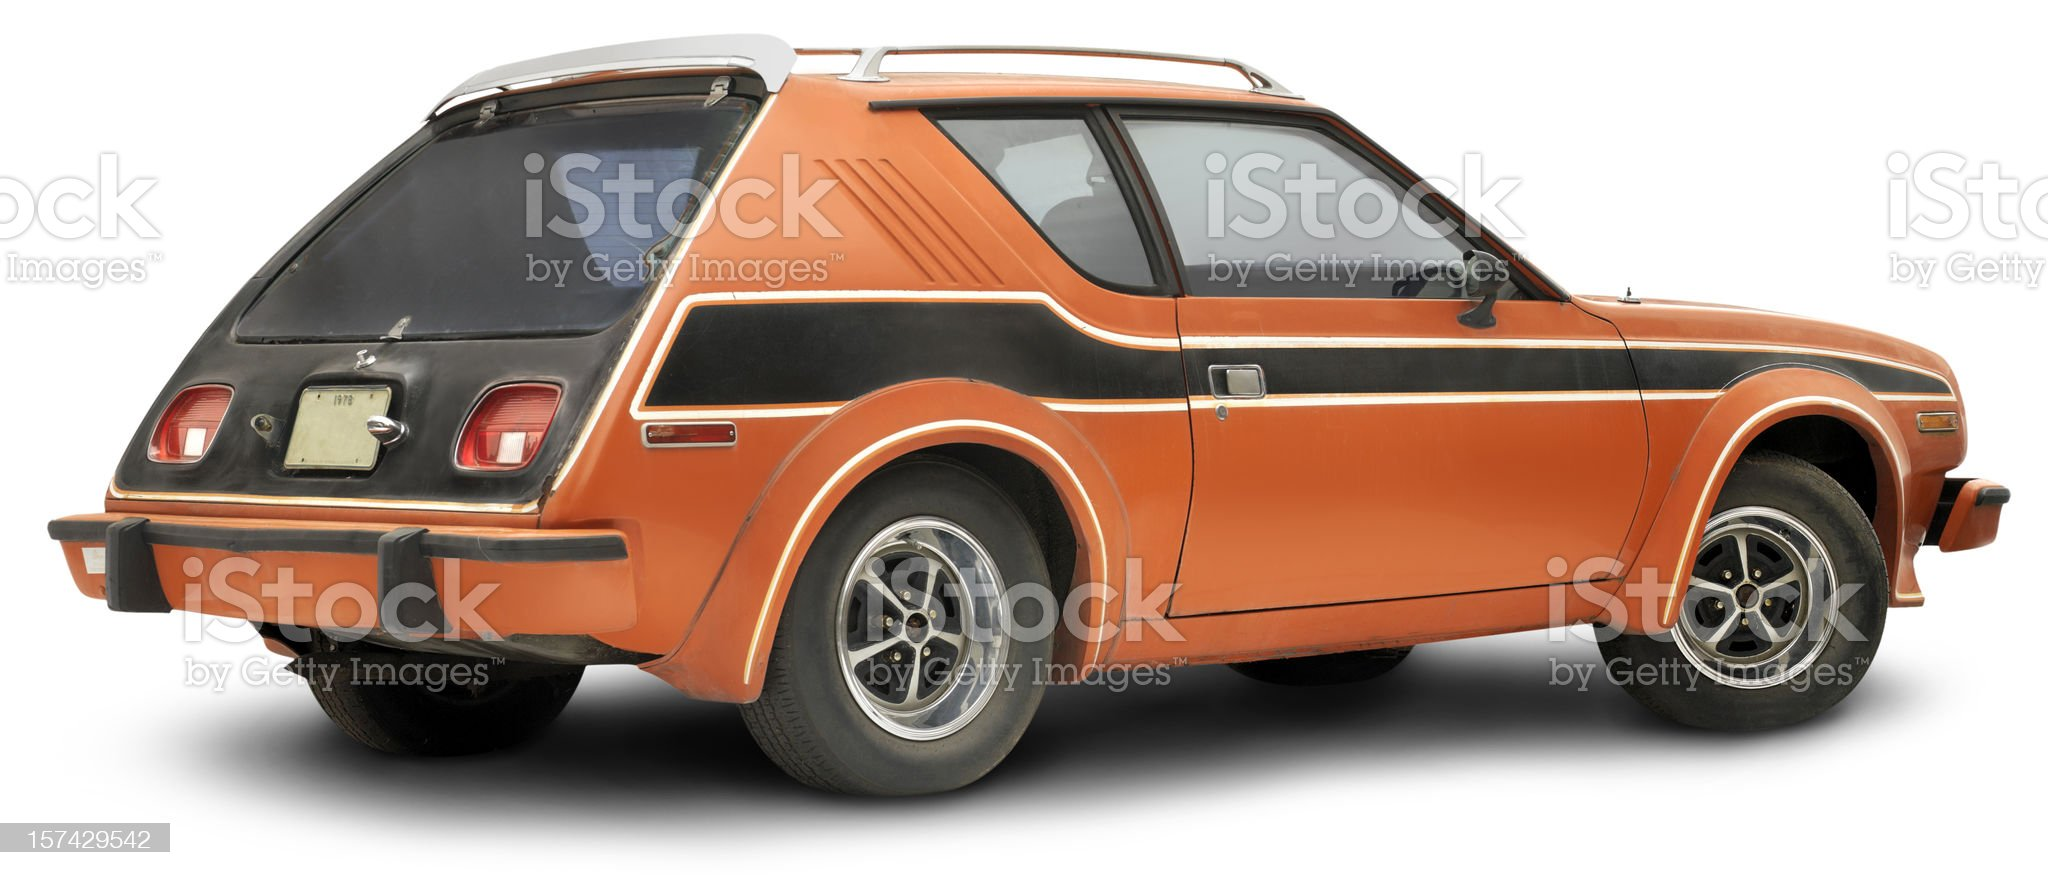 Vintage 1978 Orange Gremlin, isolated on white royalty-free stock photo